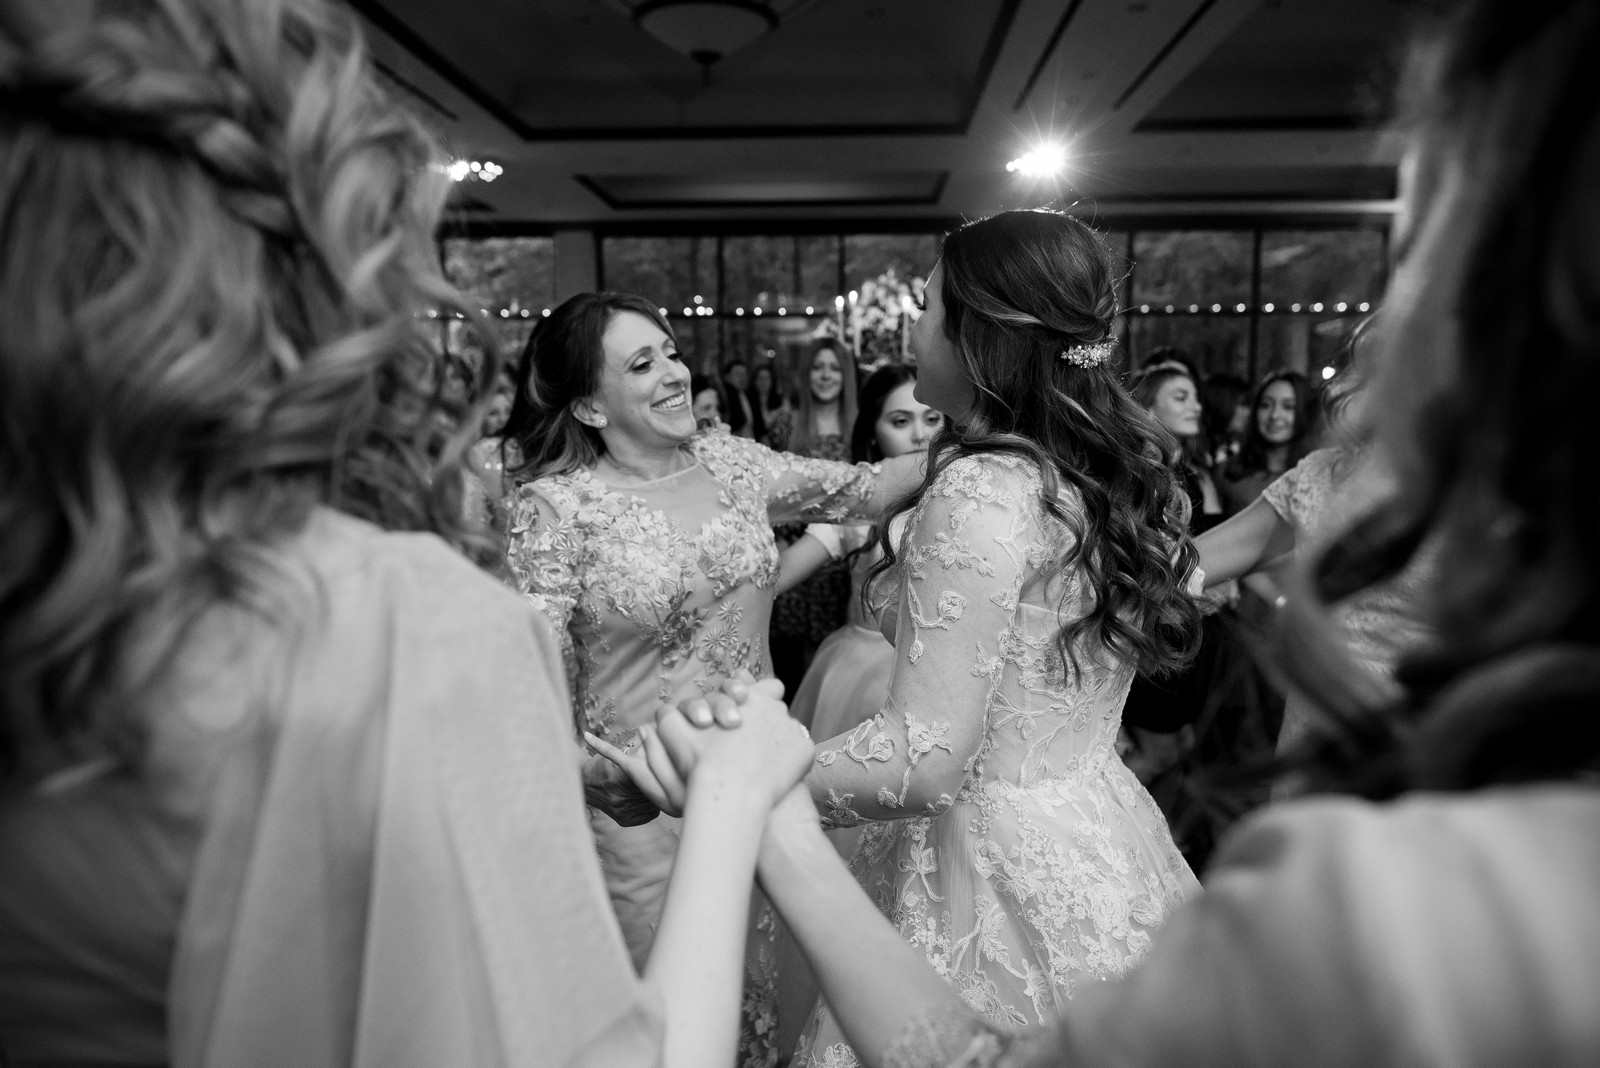 Abby and Miles' Modern Jewish Wedding at Nicotra's Ballroom, Hilton Garden Inn, Staten Island, NY, Photos by Chaim Schvarcz bride dancing